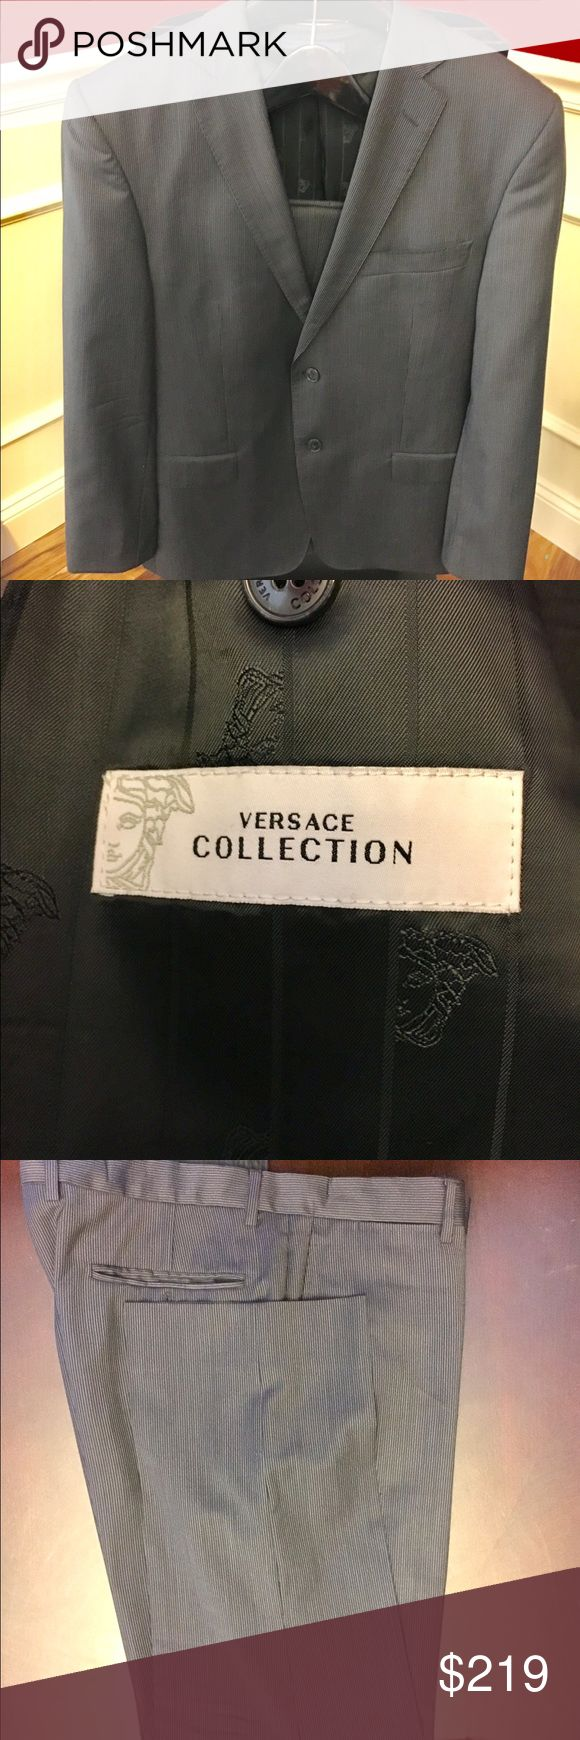 Versace Collection Men's Suit & Pants Versace Collection Men's Suit.  This suit was purchased at Saks Fifth Avenue. It was altered to 44R (Suit Jacket) and 36/30 (Pants). Great condition.  EURO size was 54. A must have Versace suit!! 🌹🌹 Versace Suits & Blazers Suits